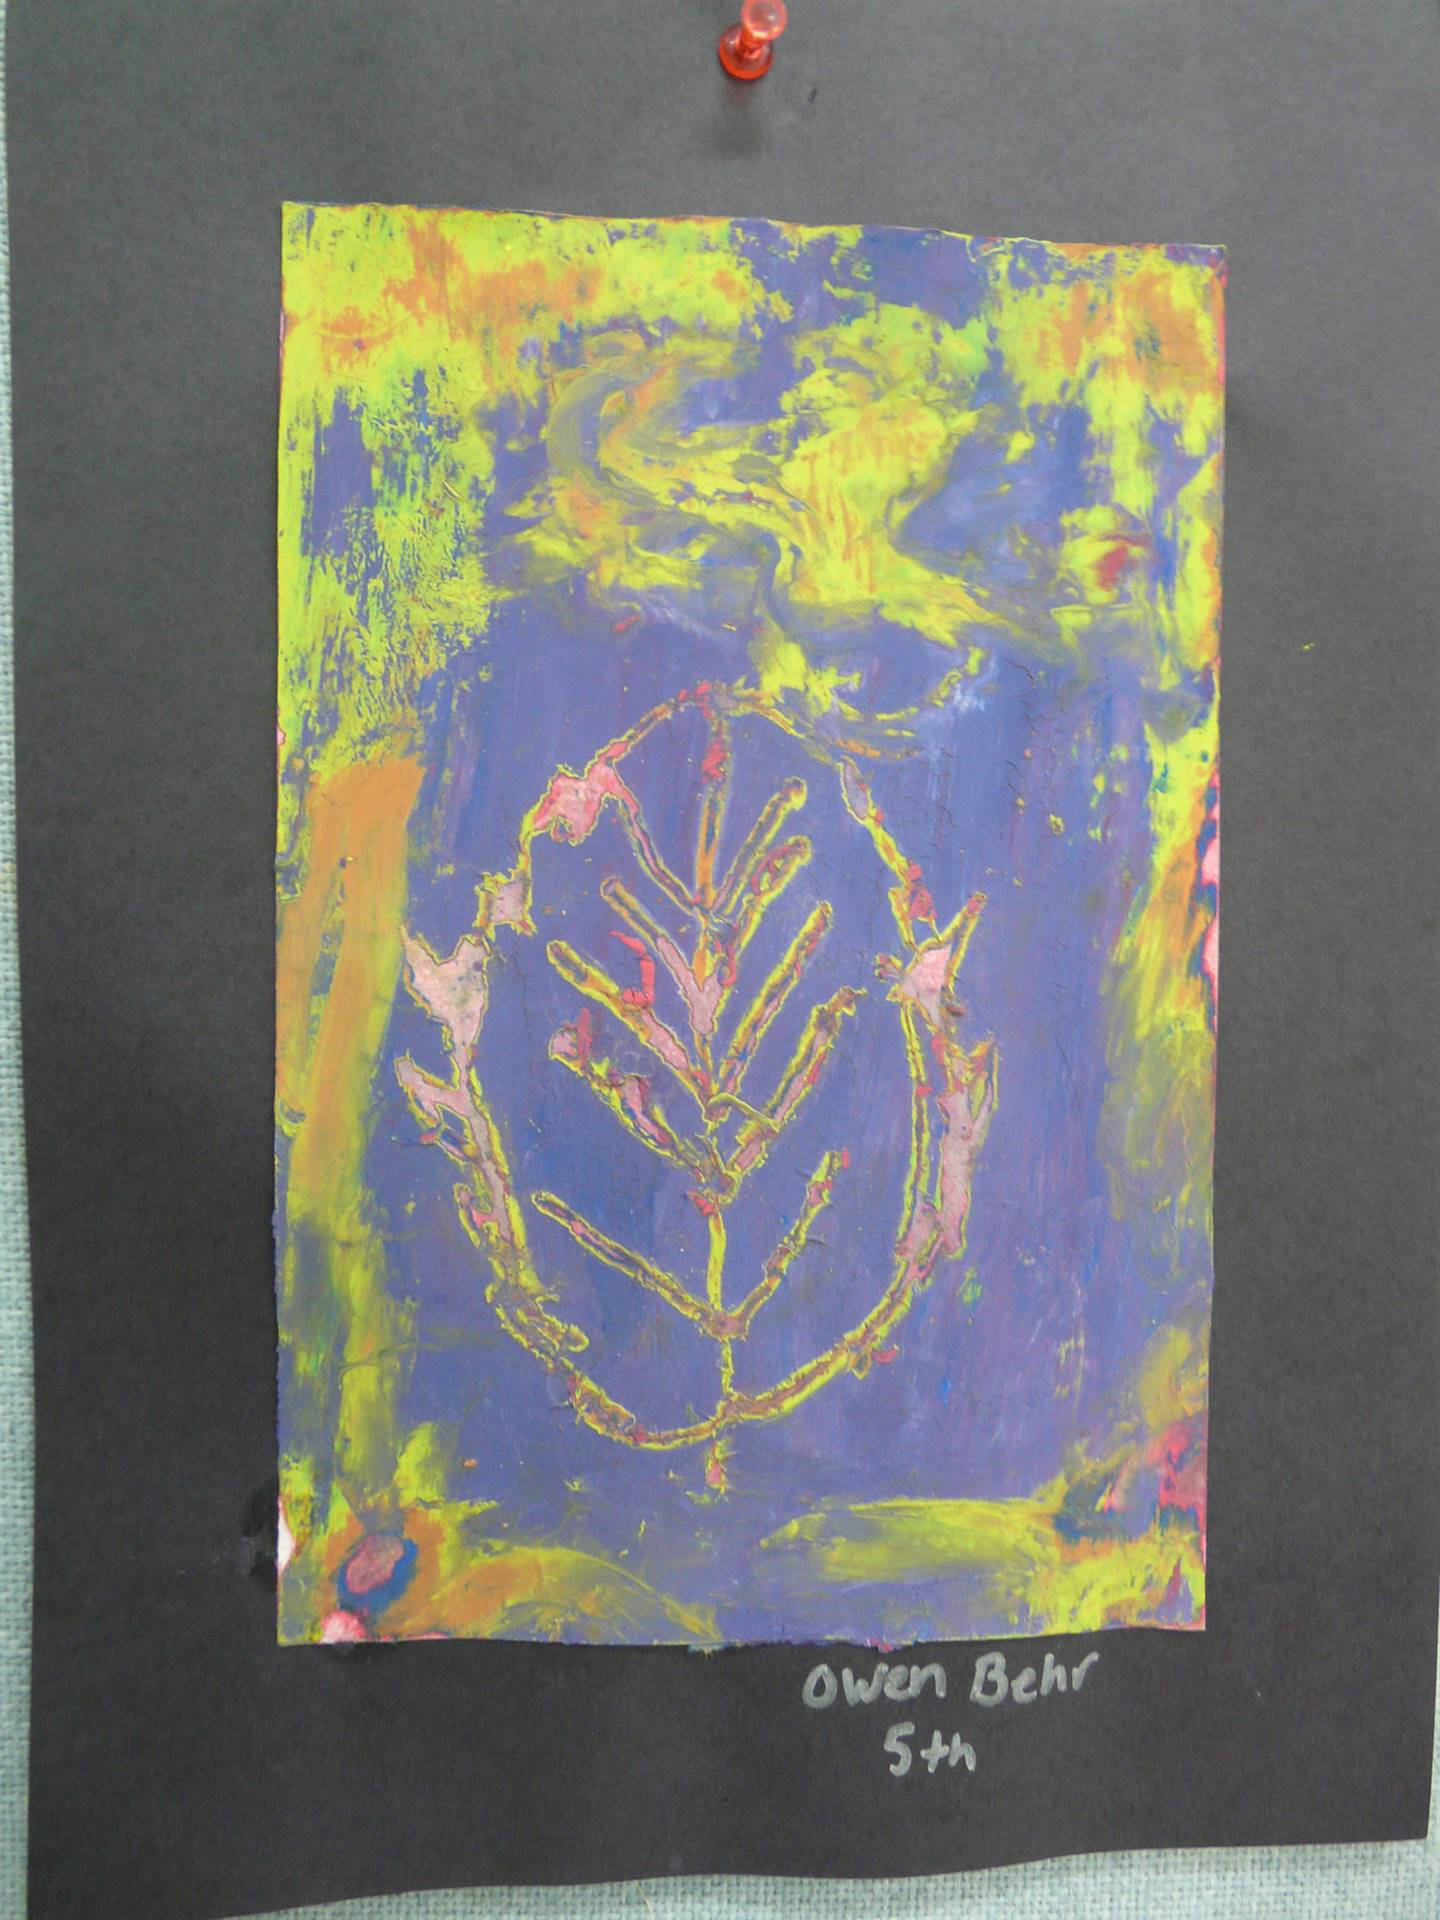 outline of leaf on a tie-dyed page